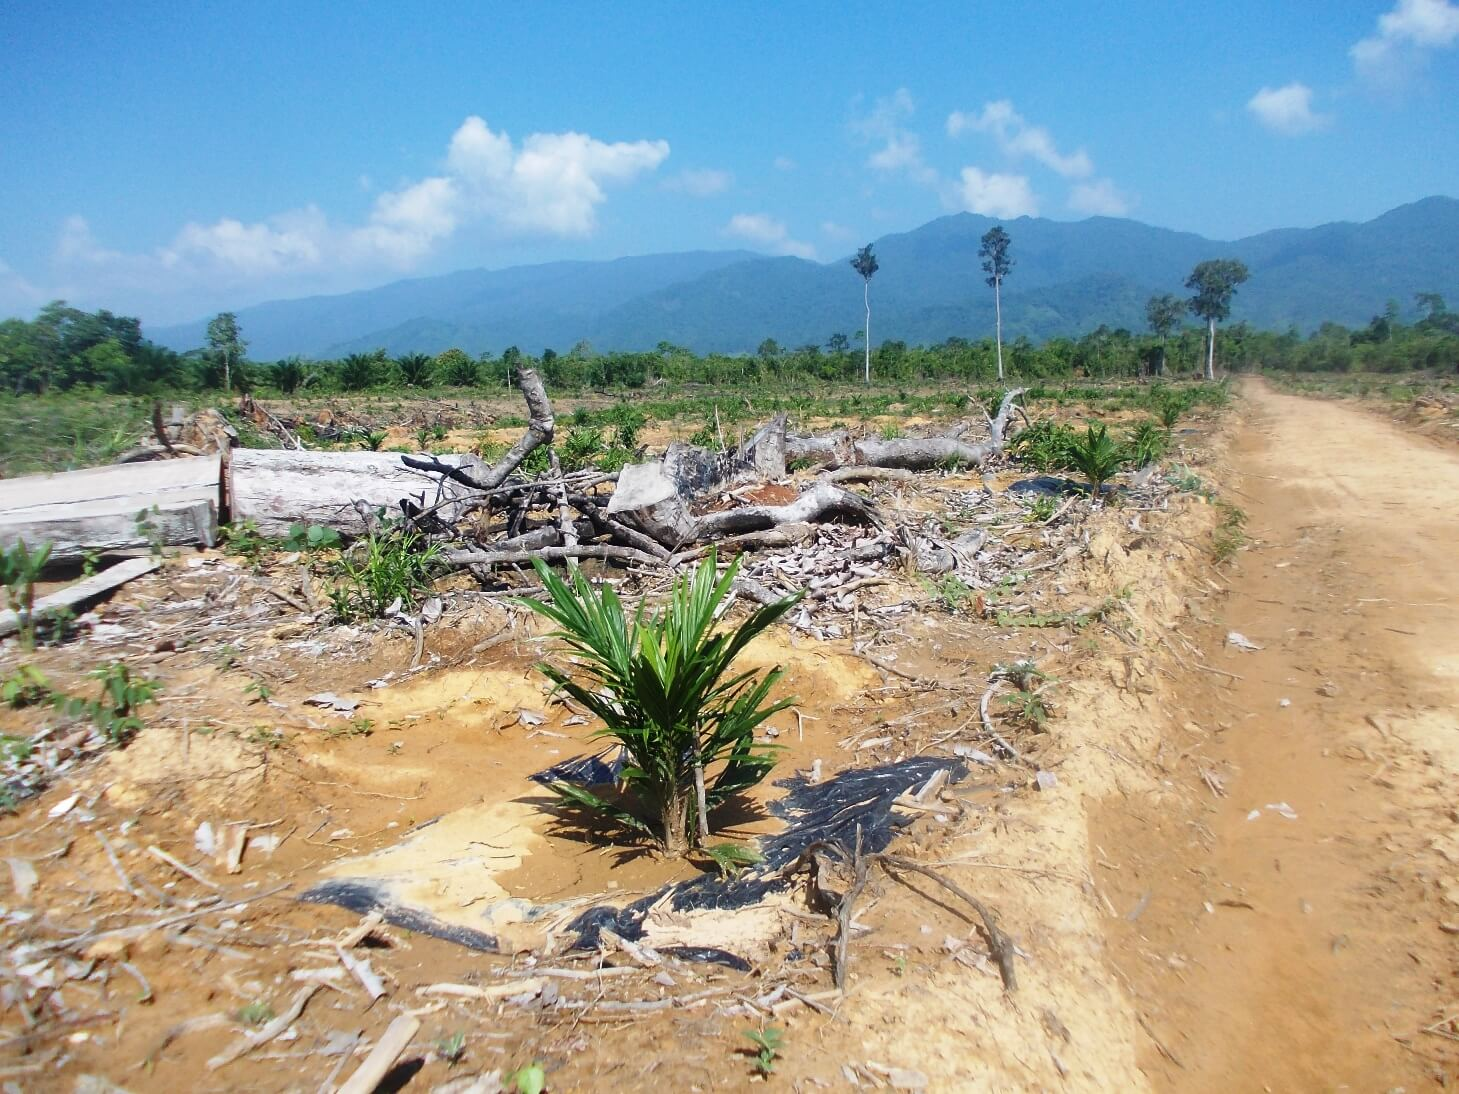 Massive forest conversion for oil palm plantations in Sandoval, Municipality of Bataraza